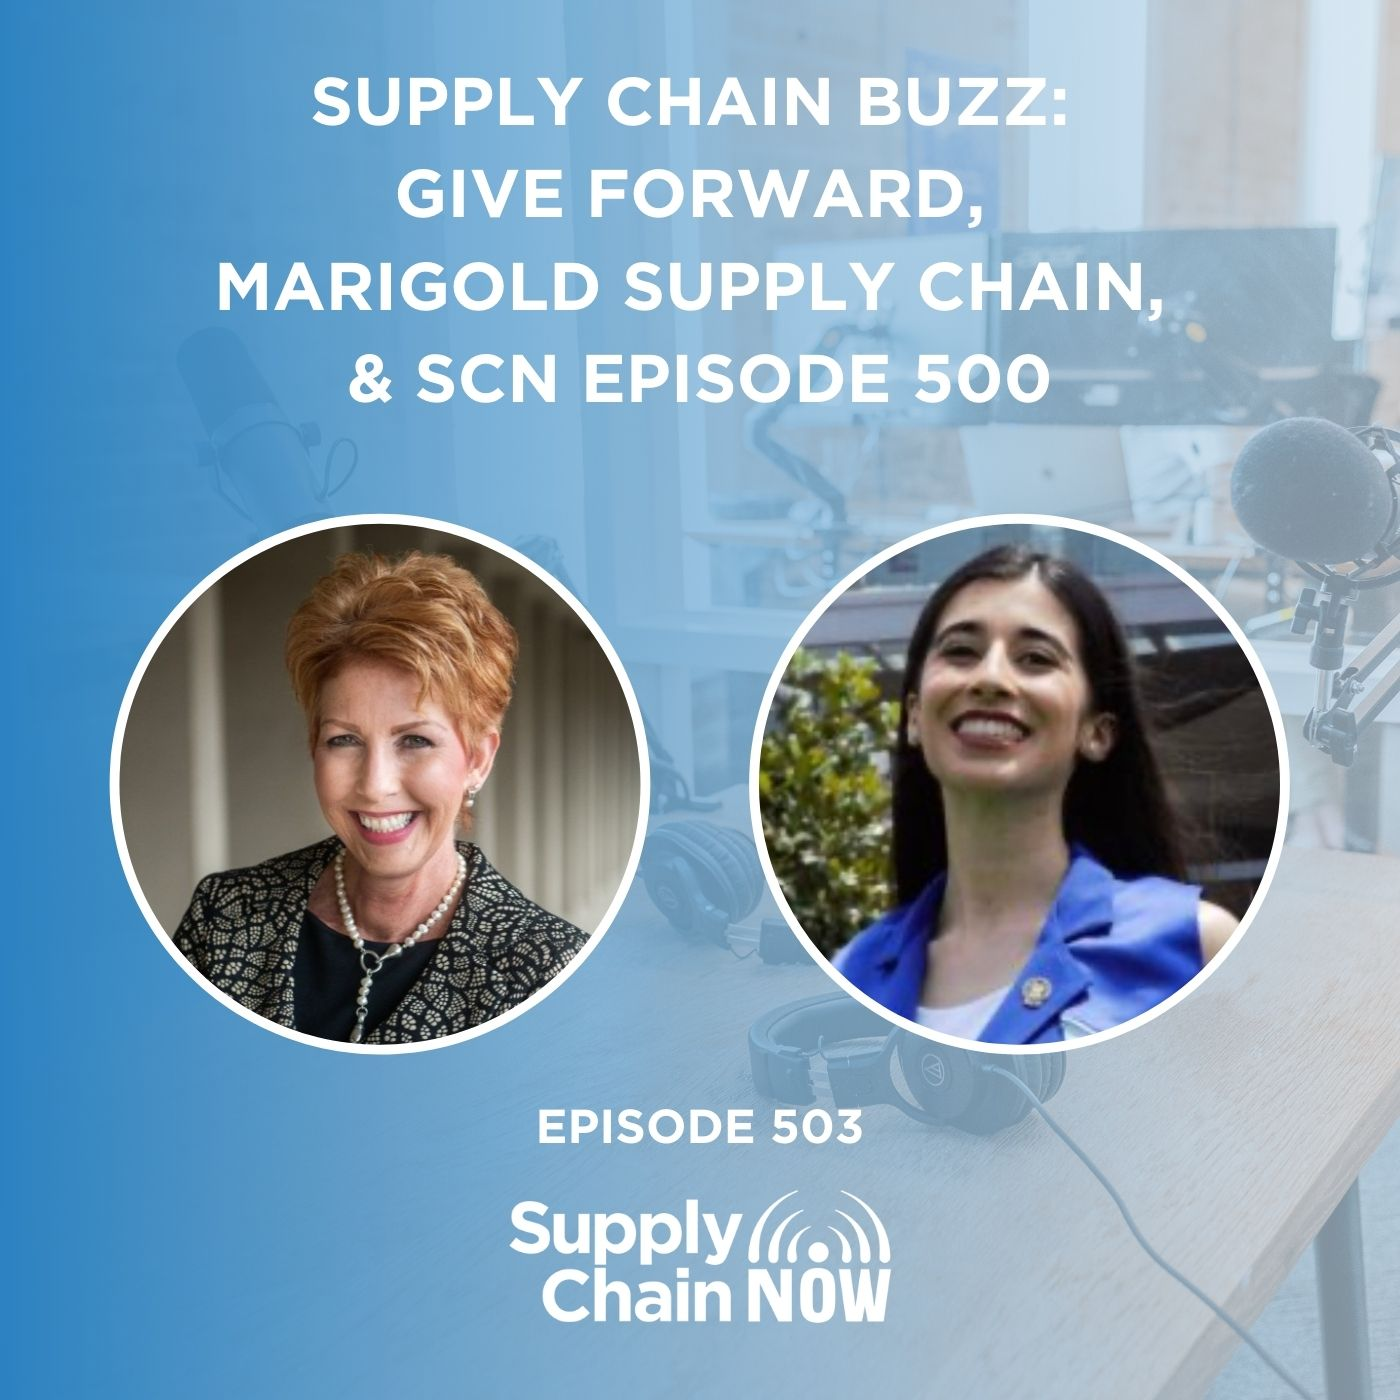 Supply Chain Buzz, Give Forward, Marigold Supply Chain, & SCN Episode 500